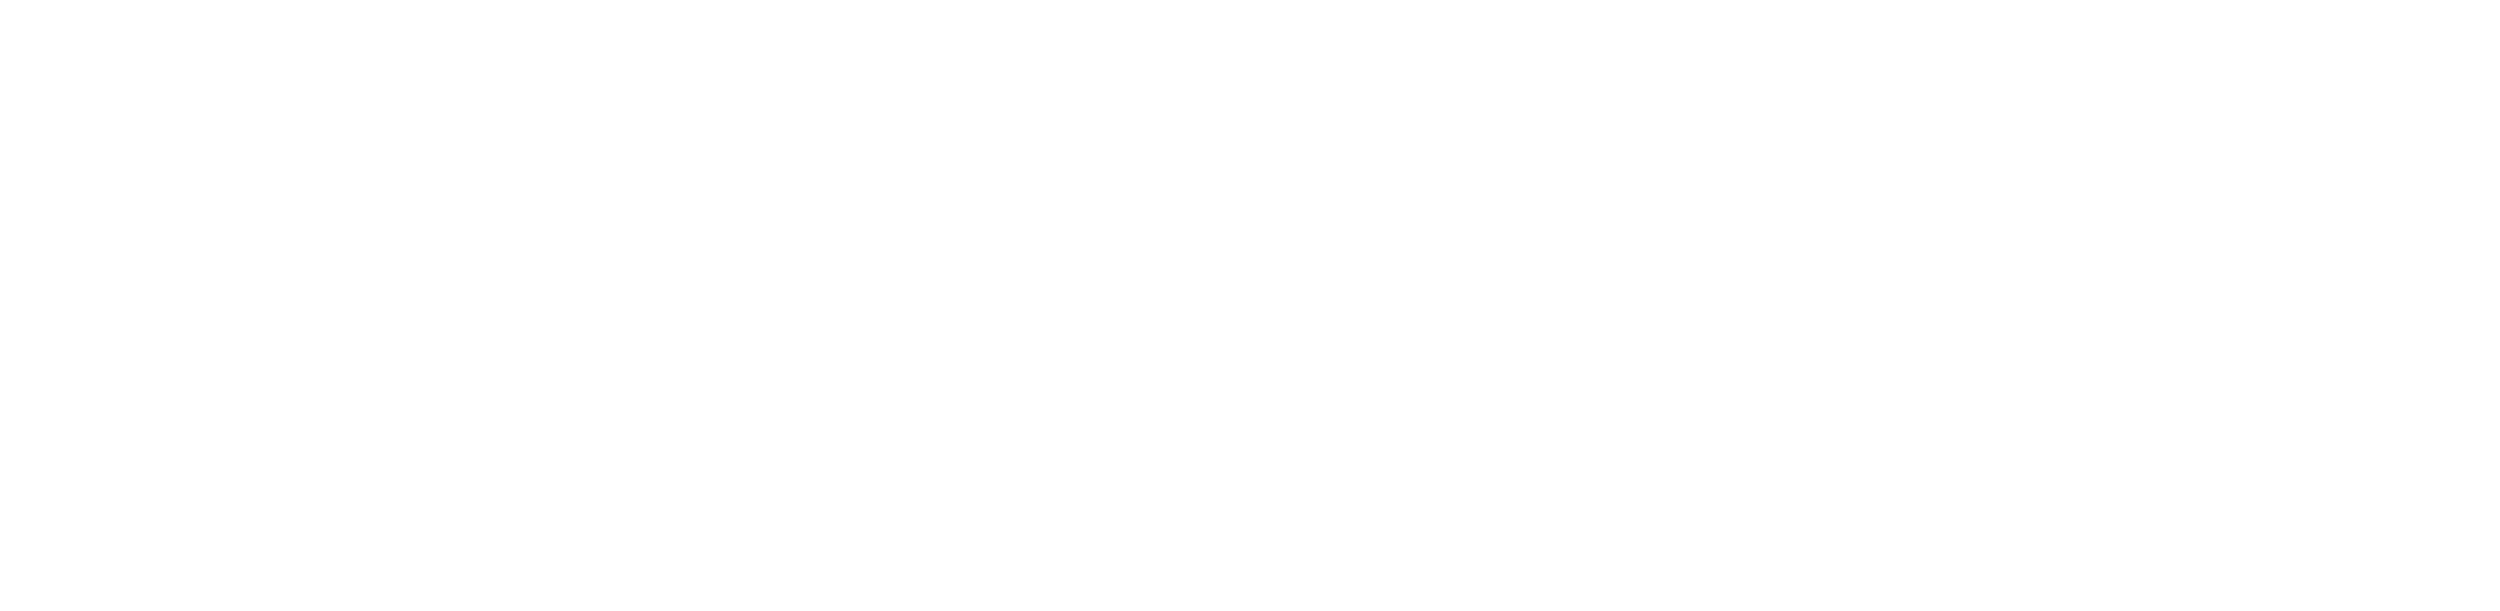 PHYTO5 quantum energetic skin and hair care is high vibrational care.